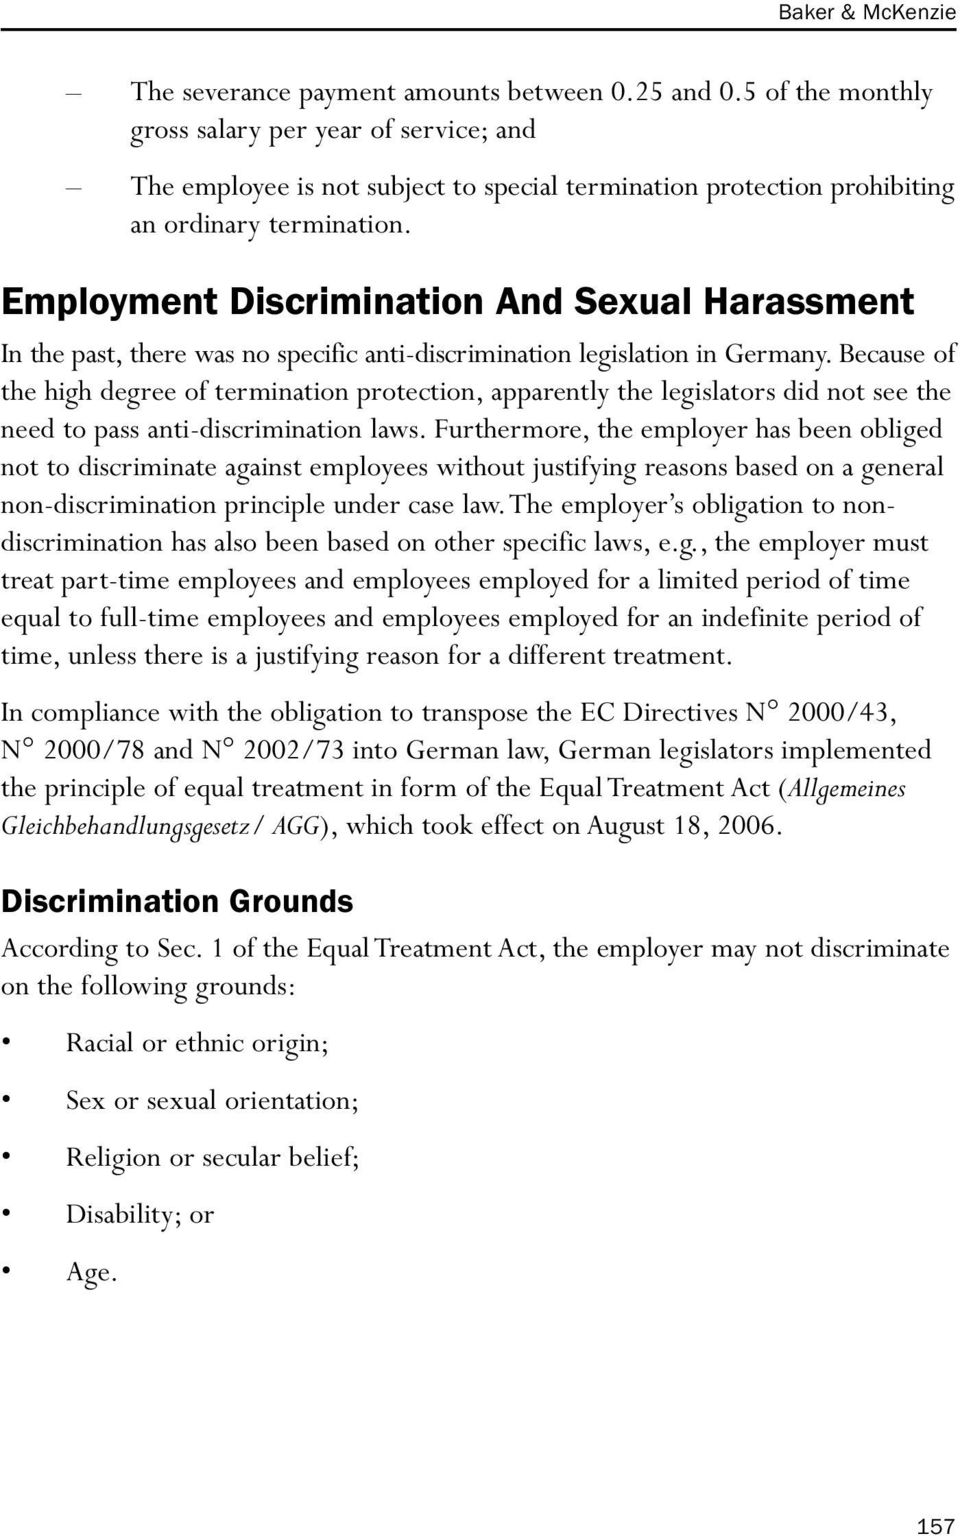 Employment Discrimination And Sexual Harassment In the past, there was no specific anti-discrimination legislation in Germany.